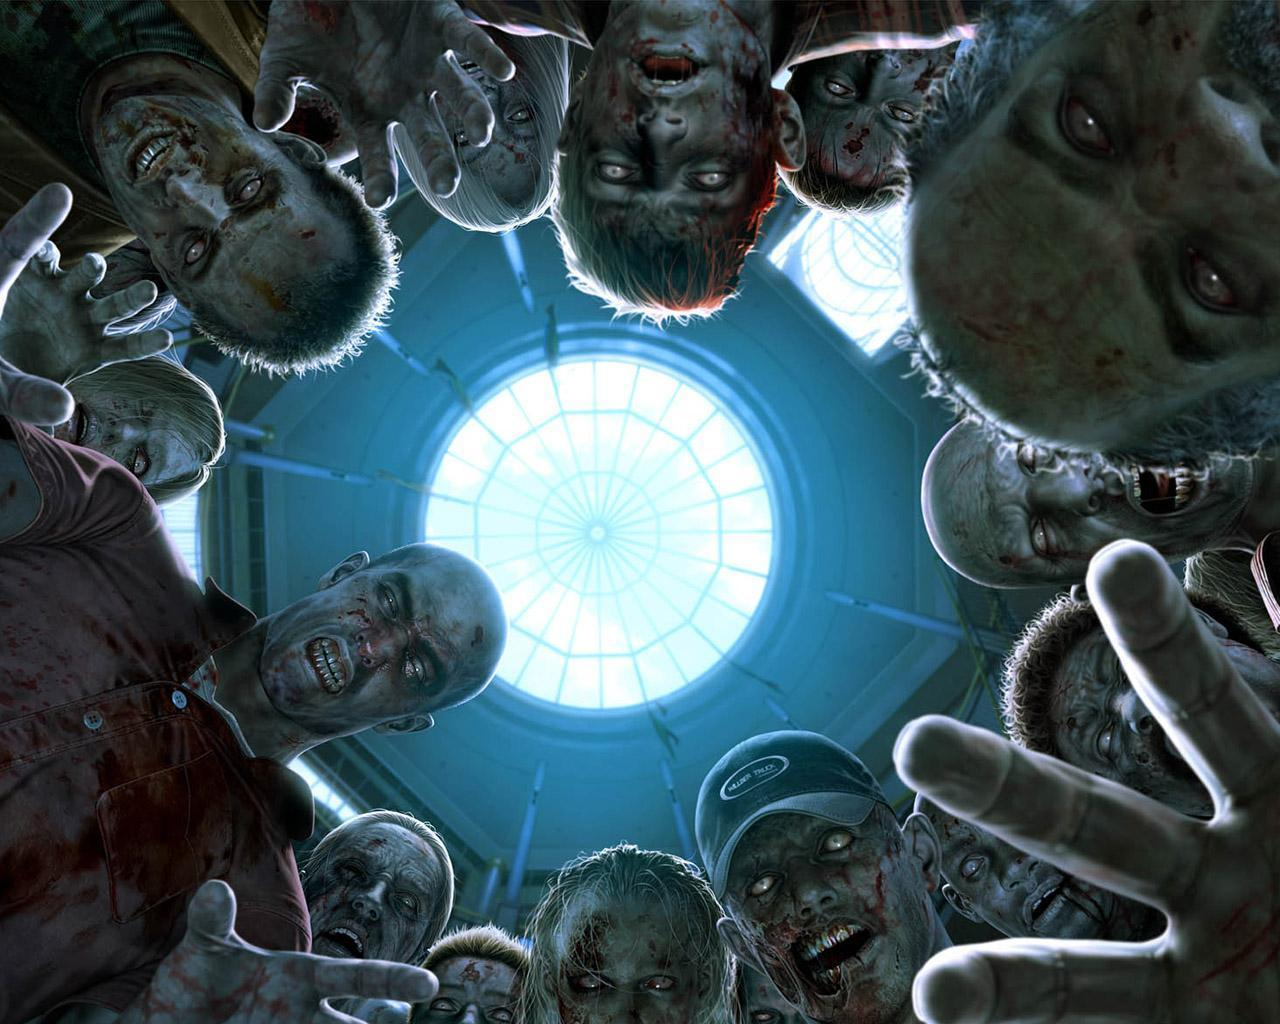 Cool Zombie Games HD Wallpaper 15 - Hd Wallpapers